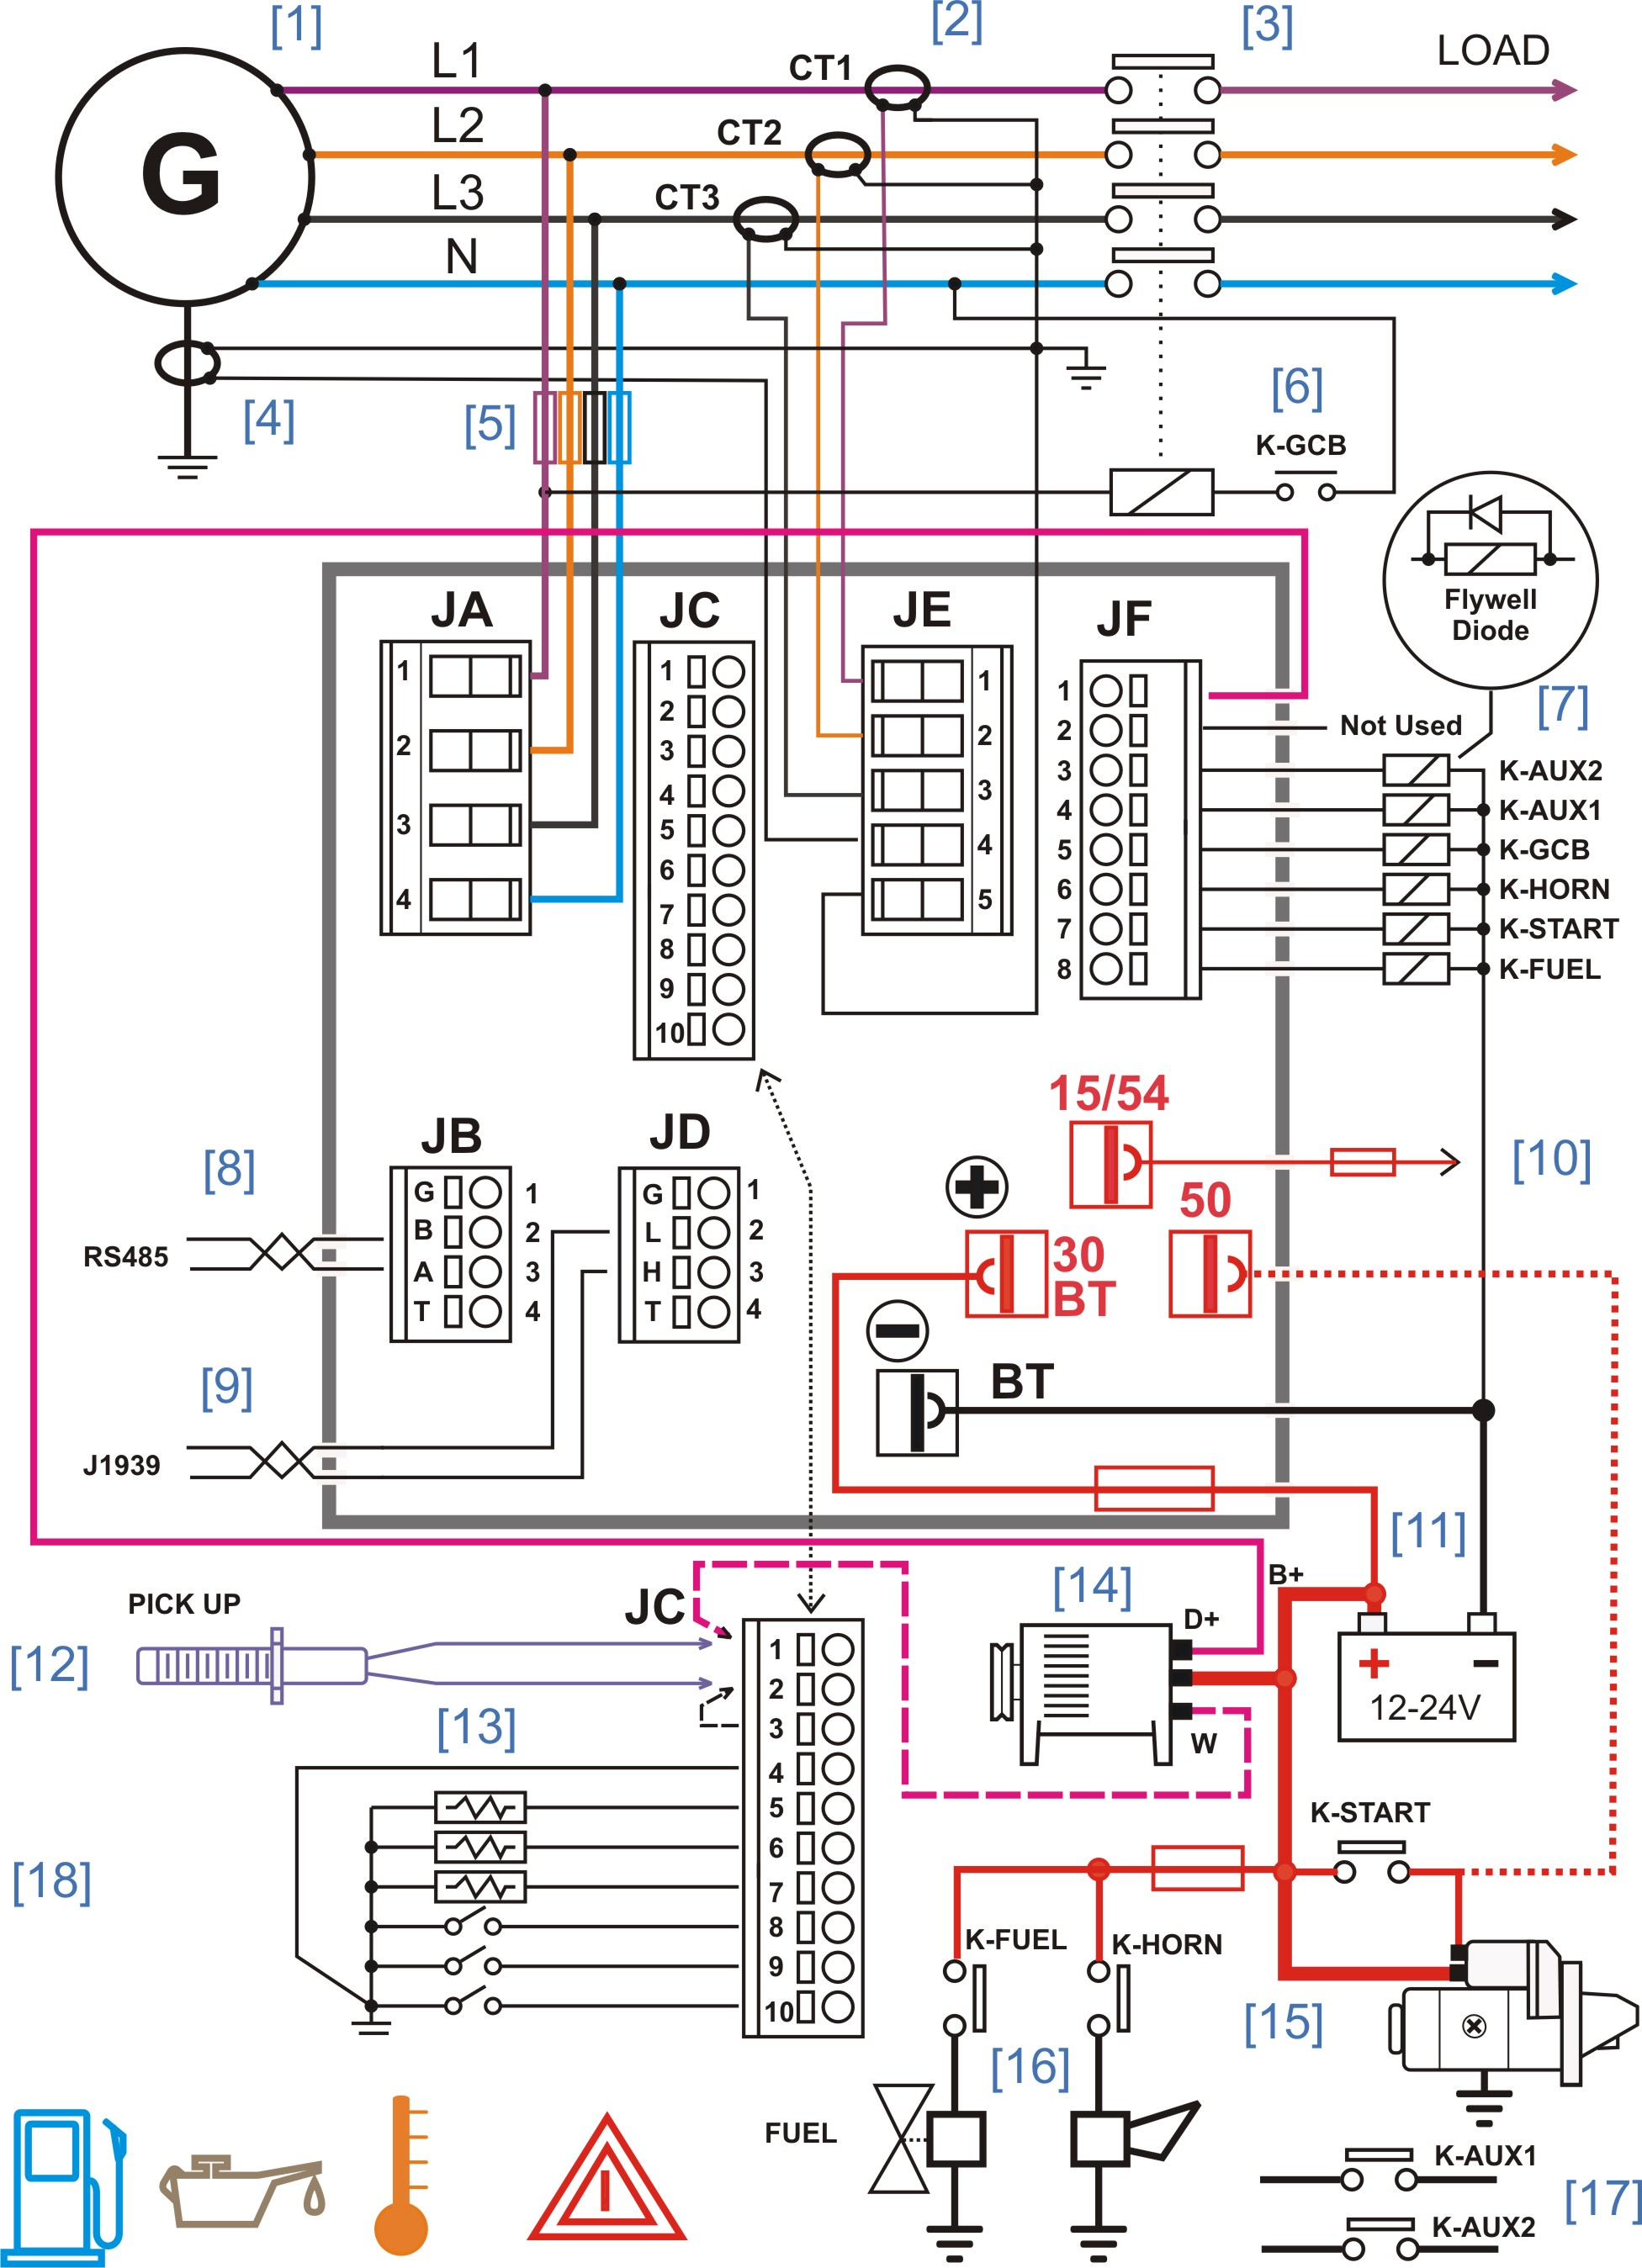 Control Panel Wiring Diagram In This Diesel Generator